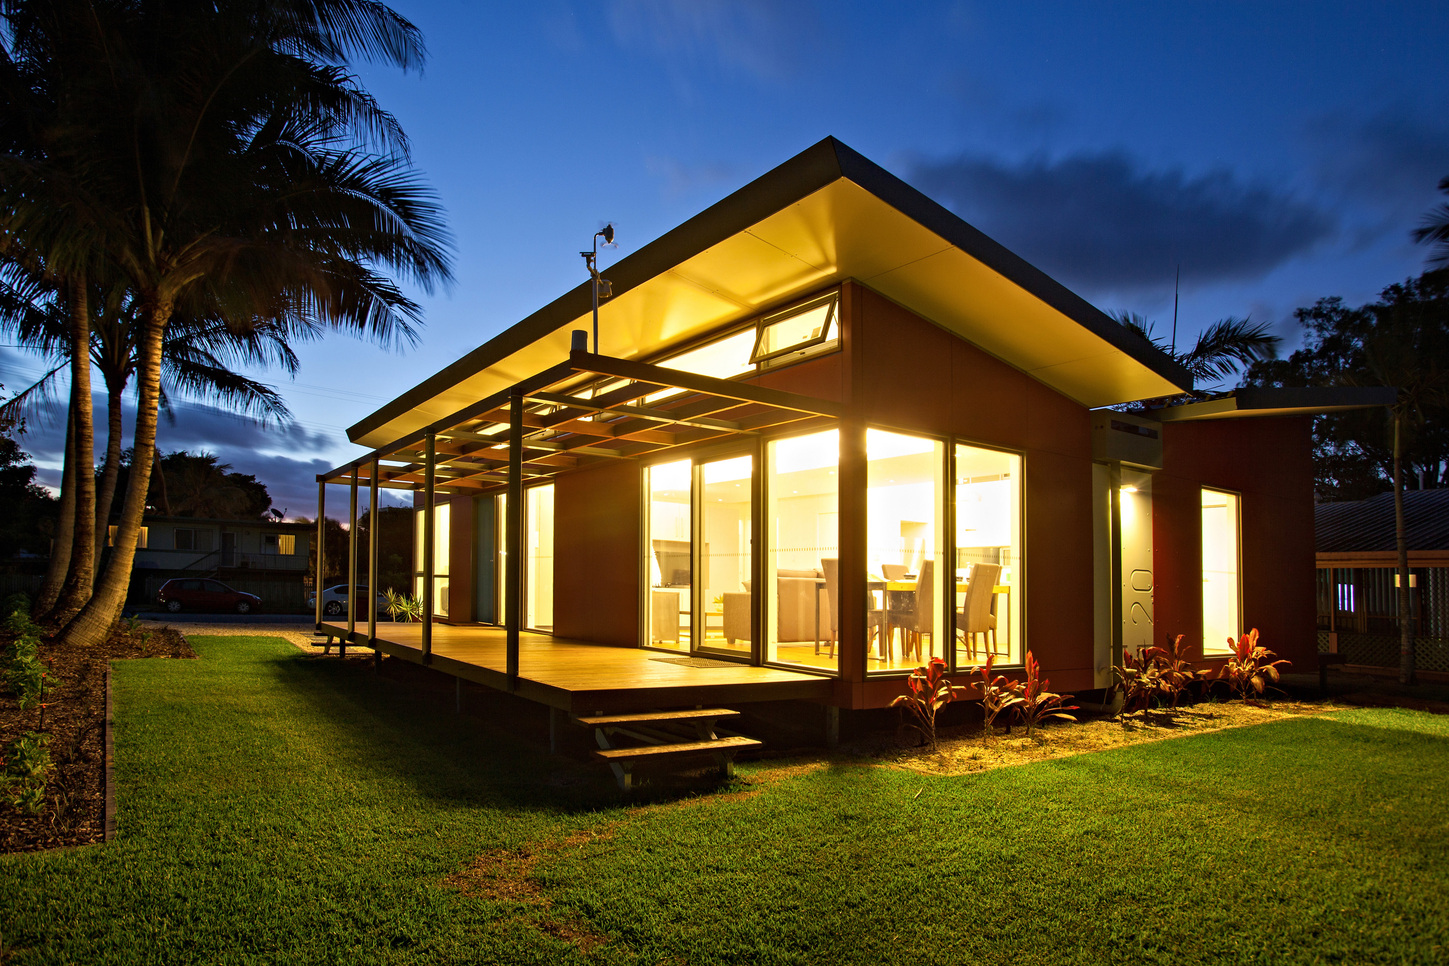 20 Shades Of Beige Lessons From Anese Prefab Housing Architecture Design